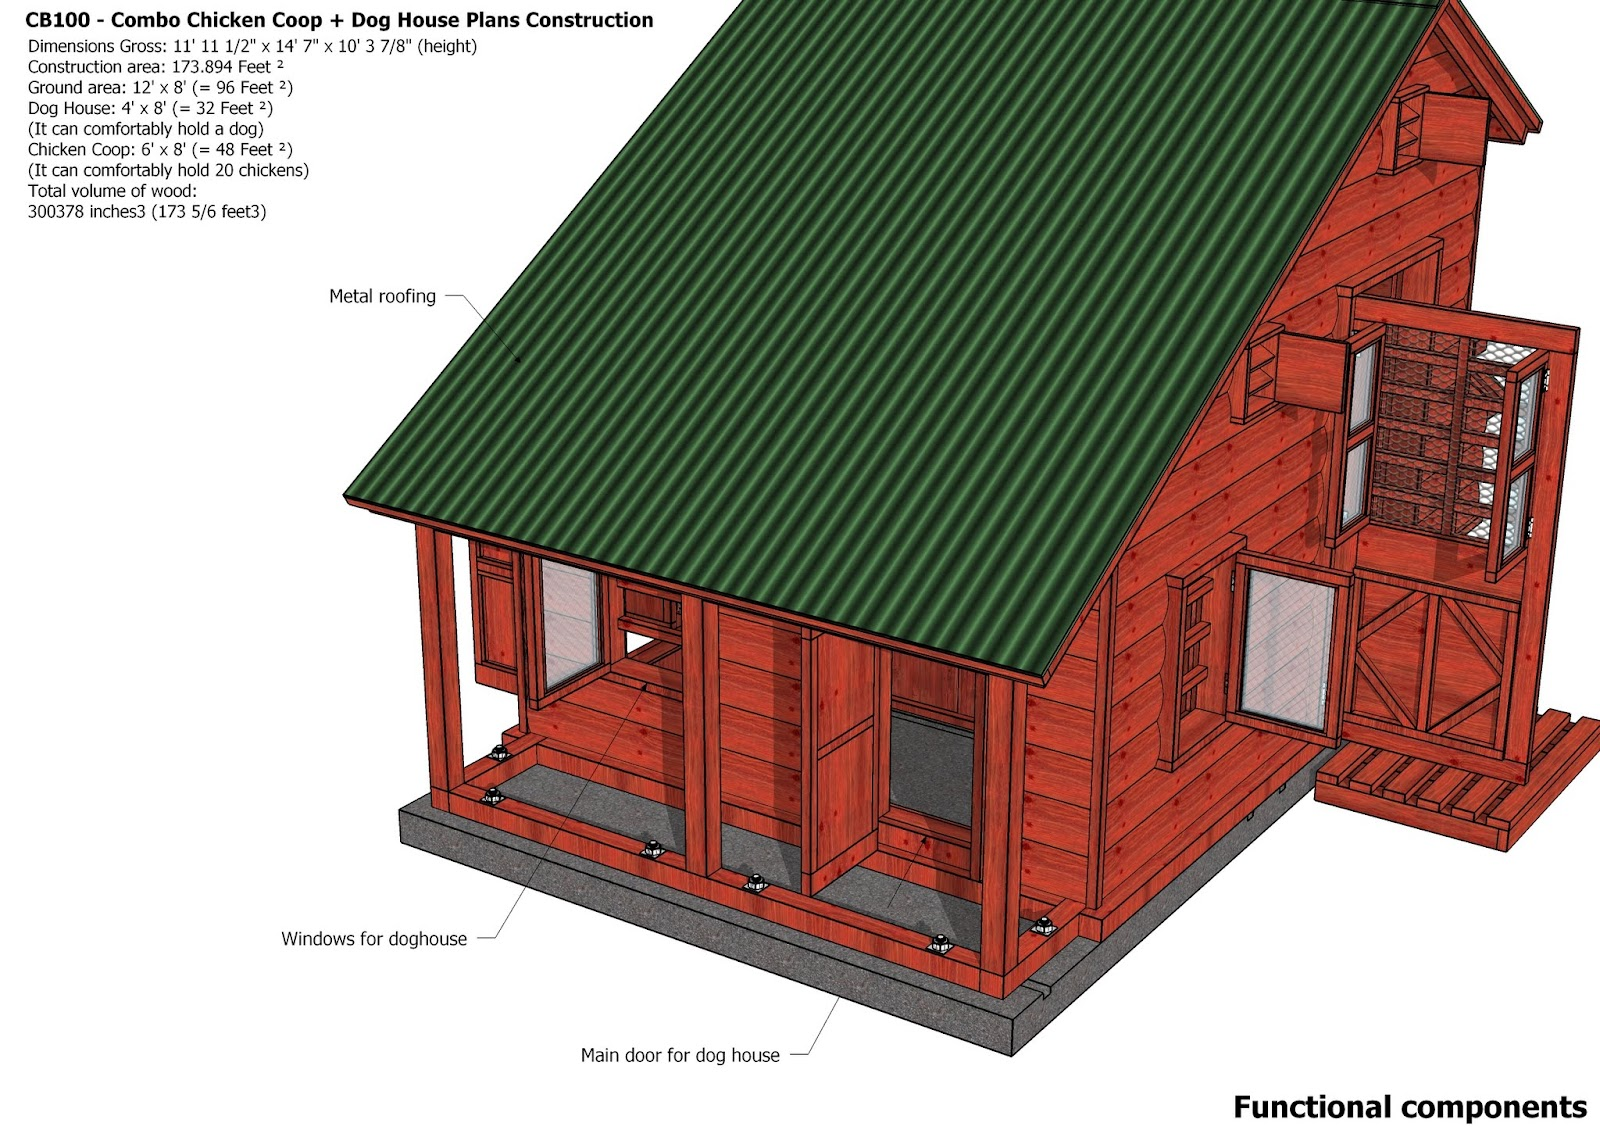 Yam coop hen house construction plans most popular for Most popular house plans 2015